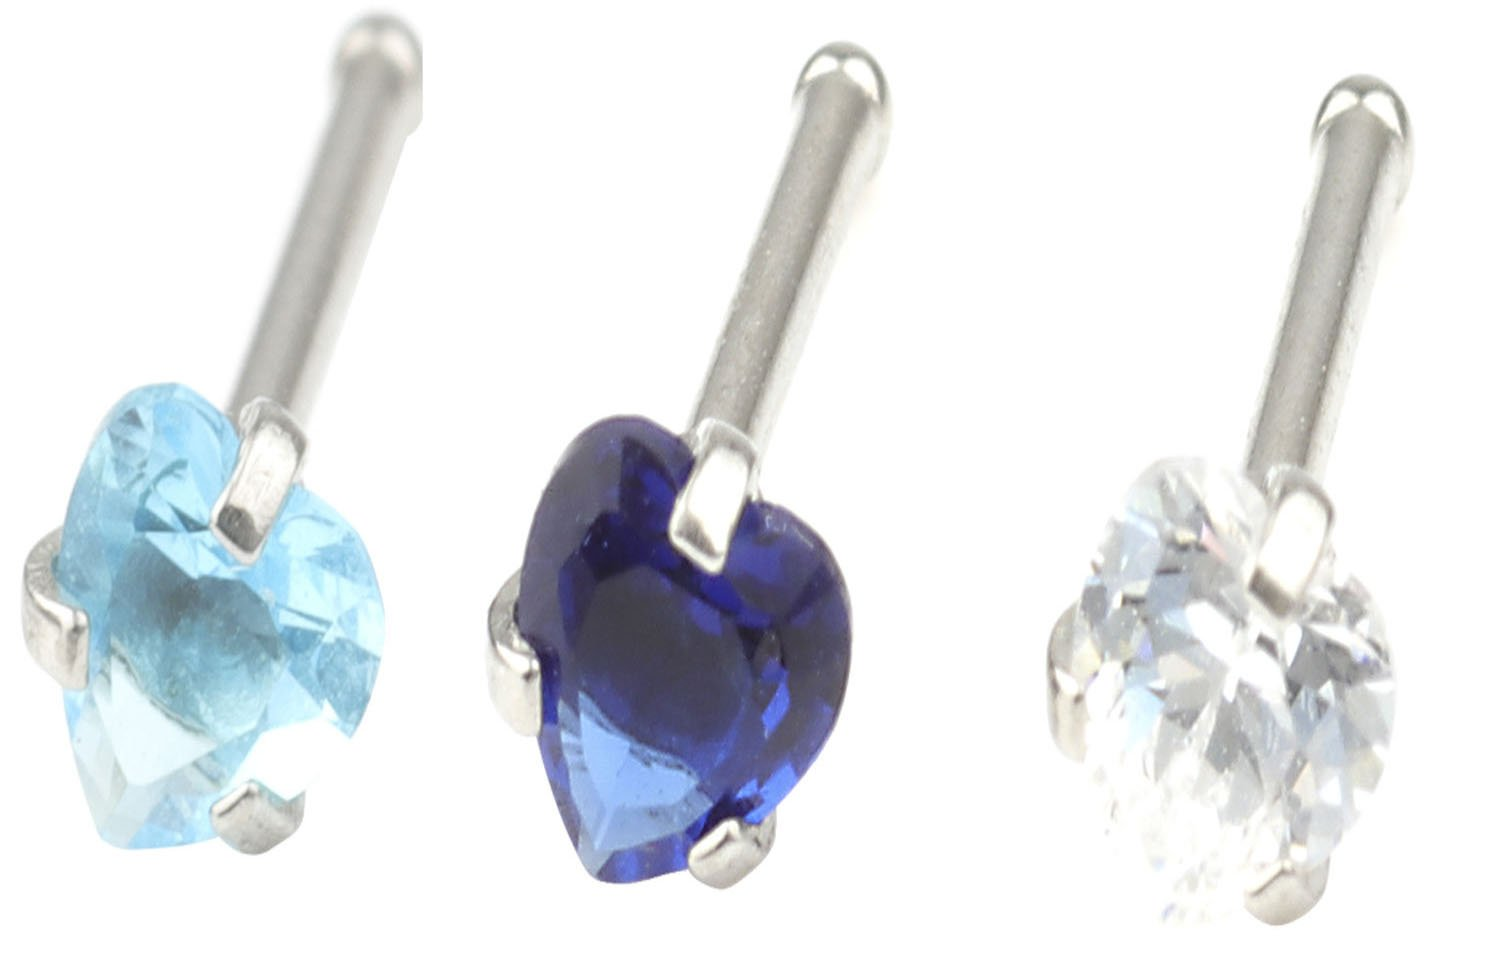 CM A+ 20G 3 Pcs Mix Stainless Steel Nose Rings Studs Piercing Body Jewelry 3mm Heart Shape Cubic Zirconia &8